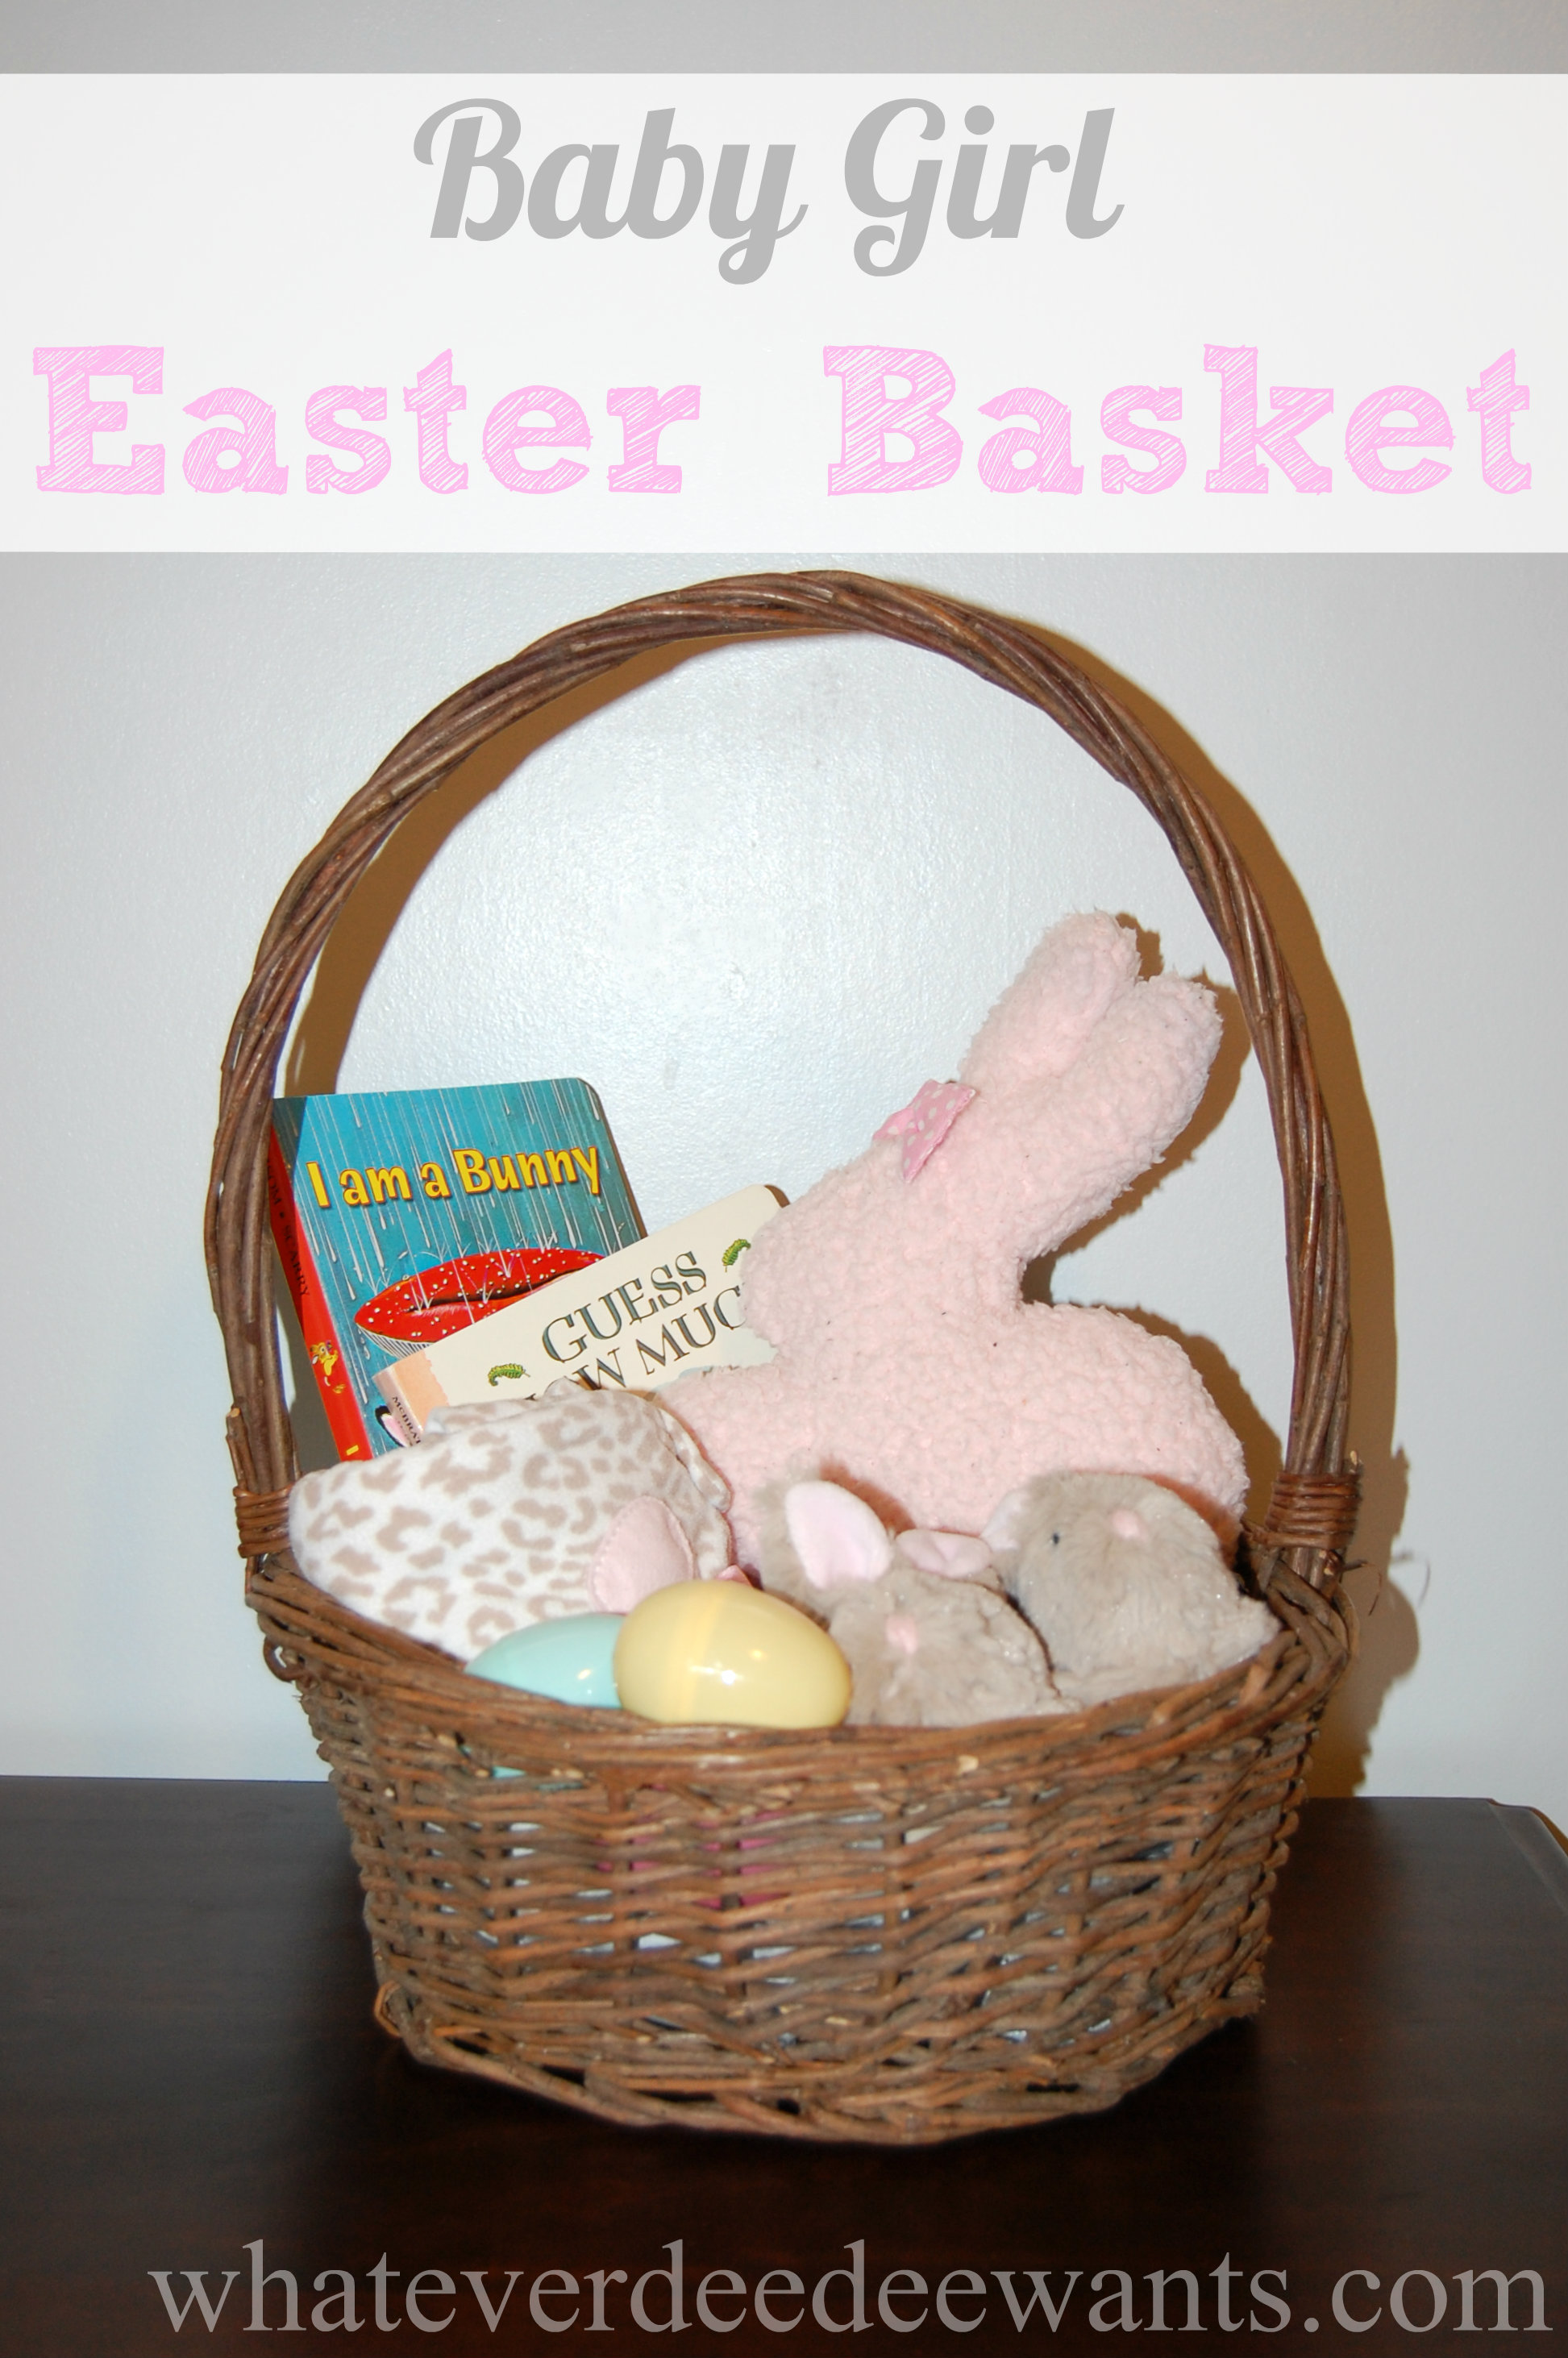 Peter rabbit no candy easter basket peter rabbit candy free easter basket negle